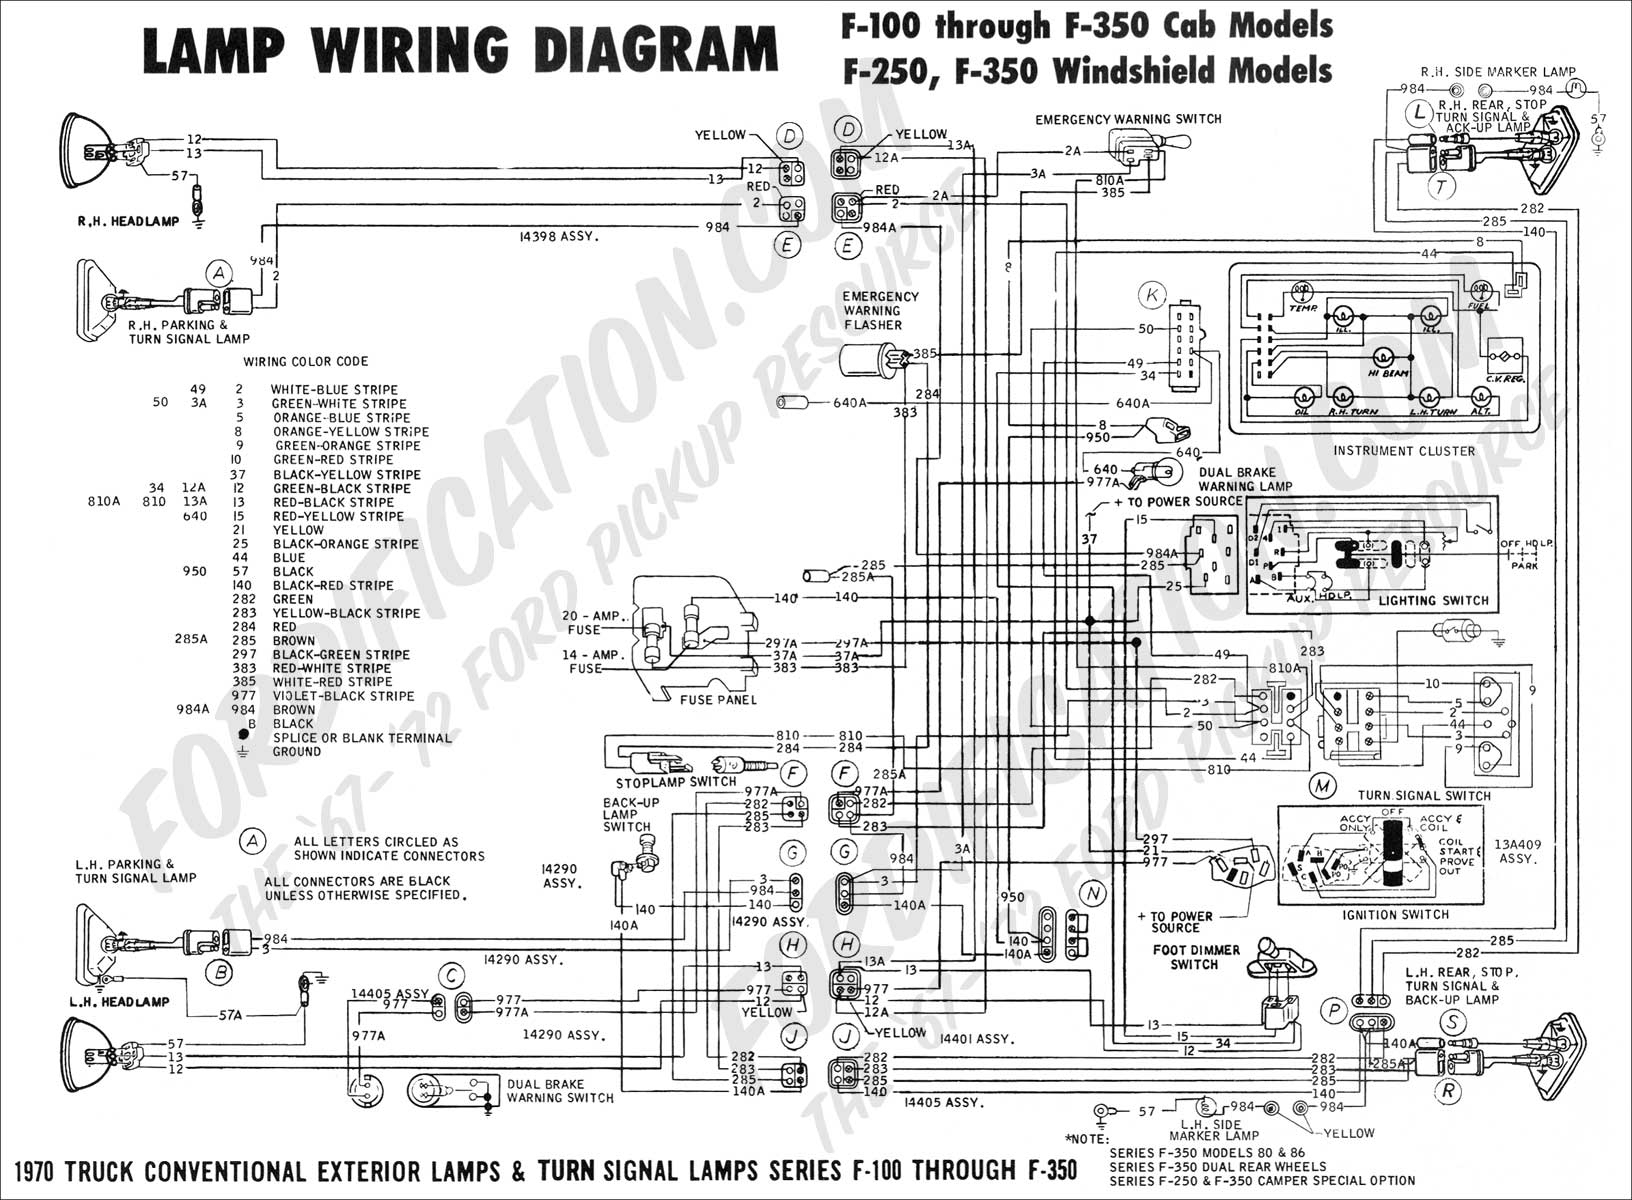 1997 Ford Ranger Wiring Harness - Wiring Diagrams Click - 97 Ford Trailer Wiring Diagram